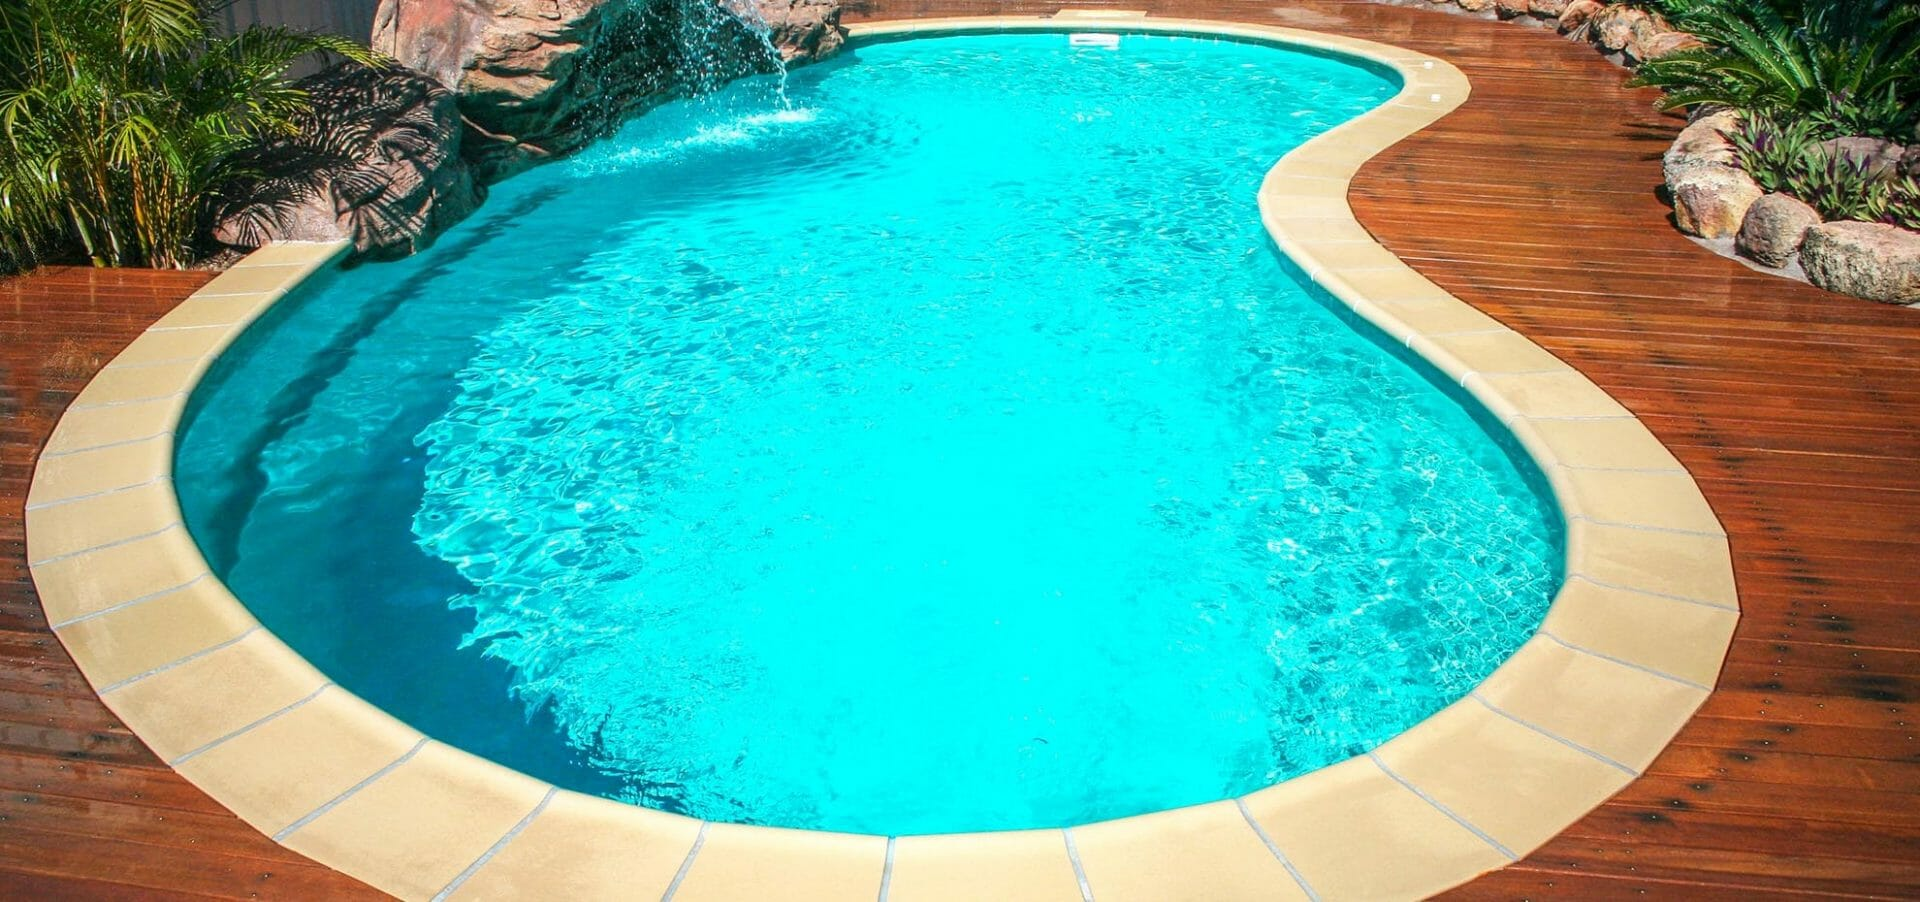 Fiberglass Tuscany Pool with cedar deck by Leisure Pools